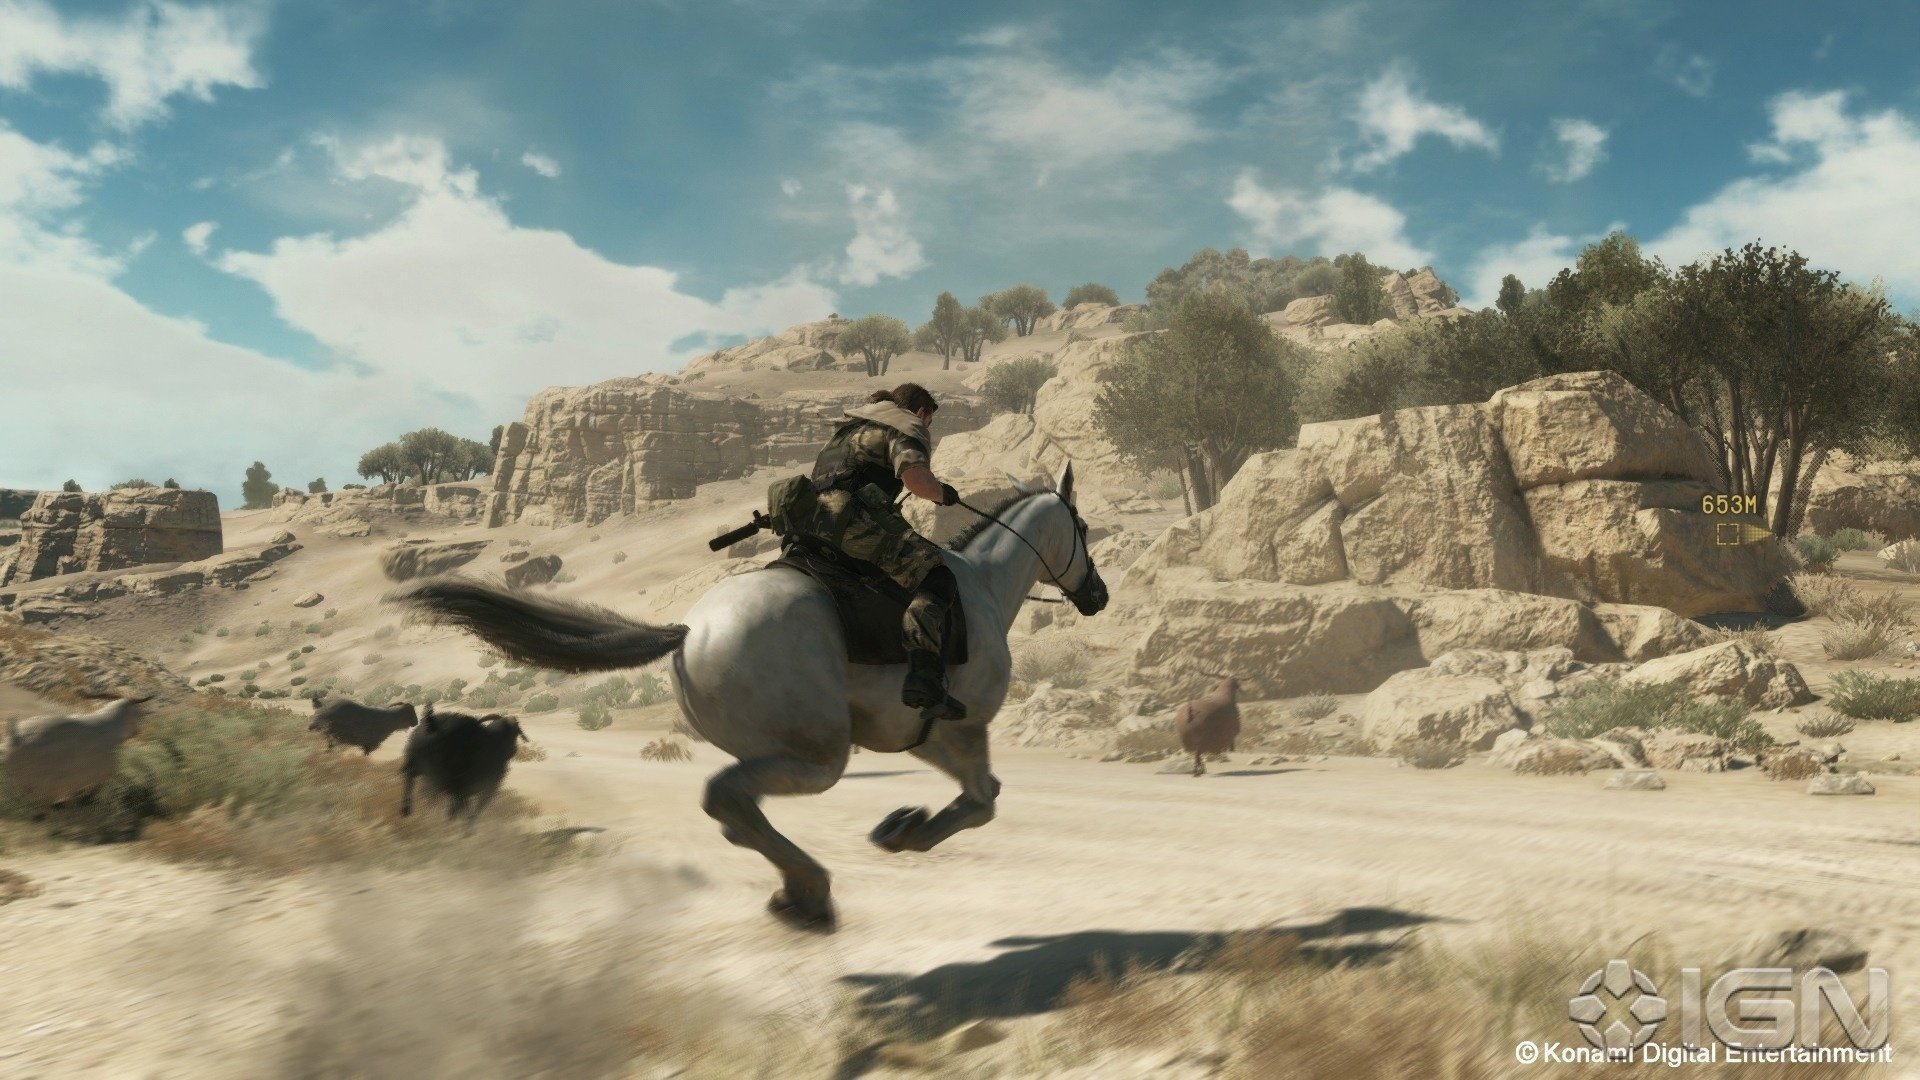 Metal Gear Solid V: The Phantom Pain - системные требования PC-версии - Изображение 1